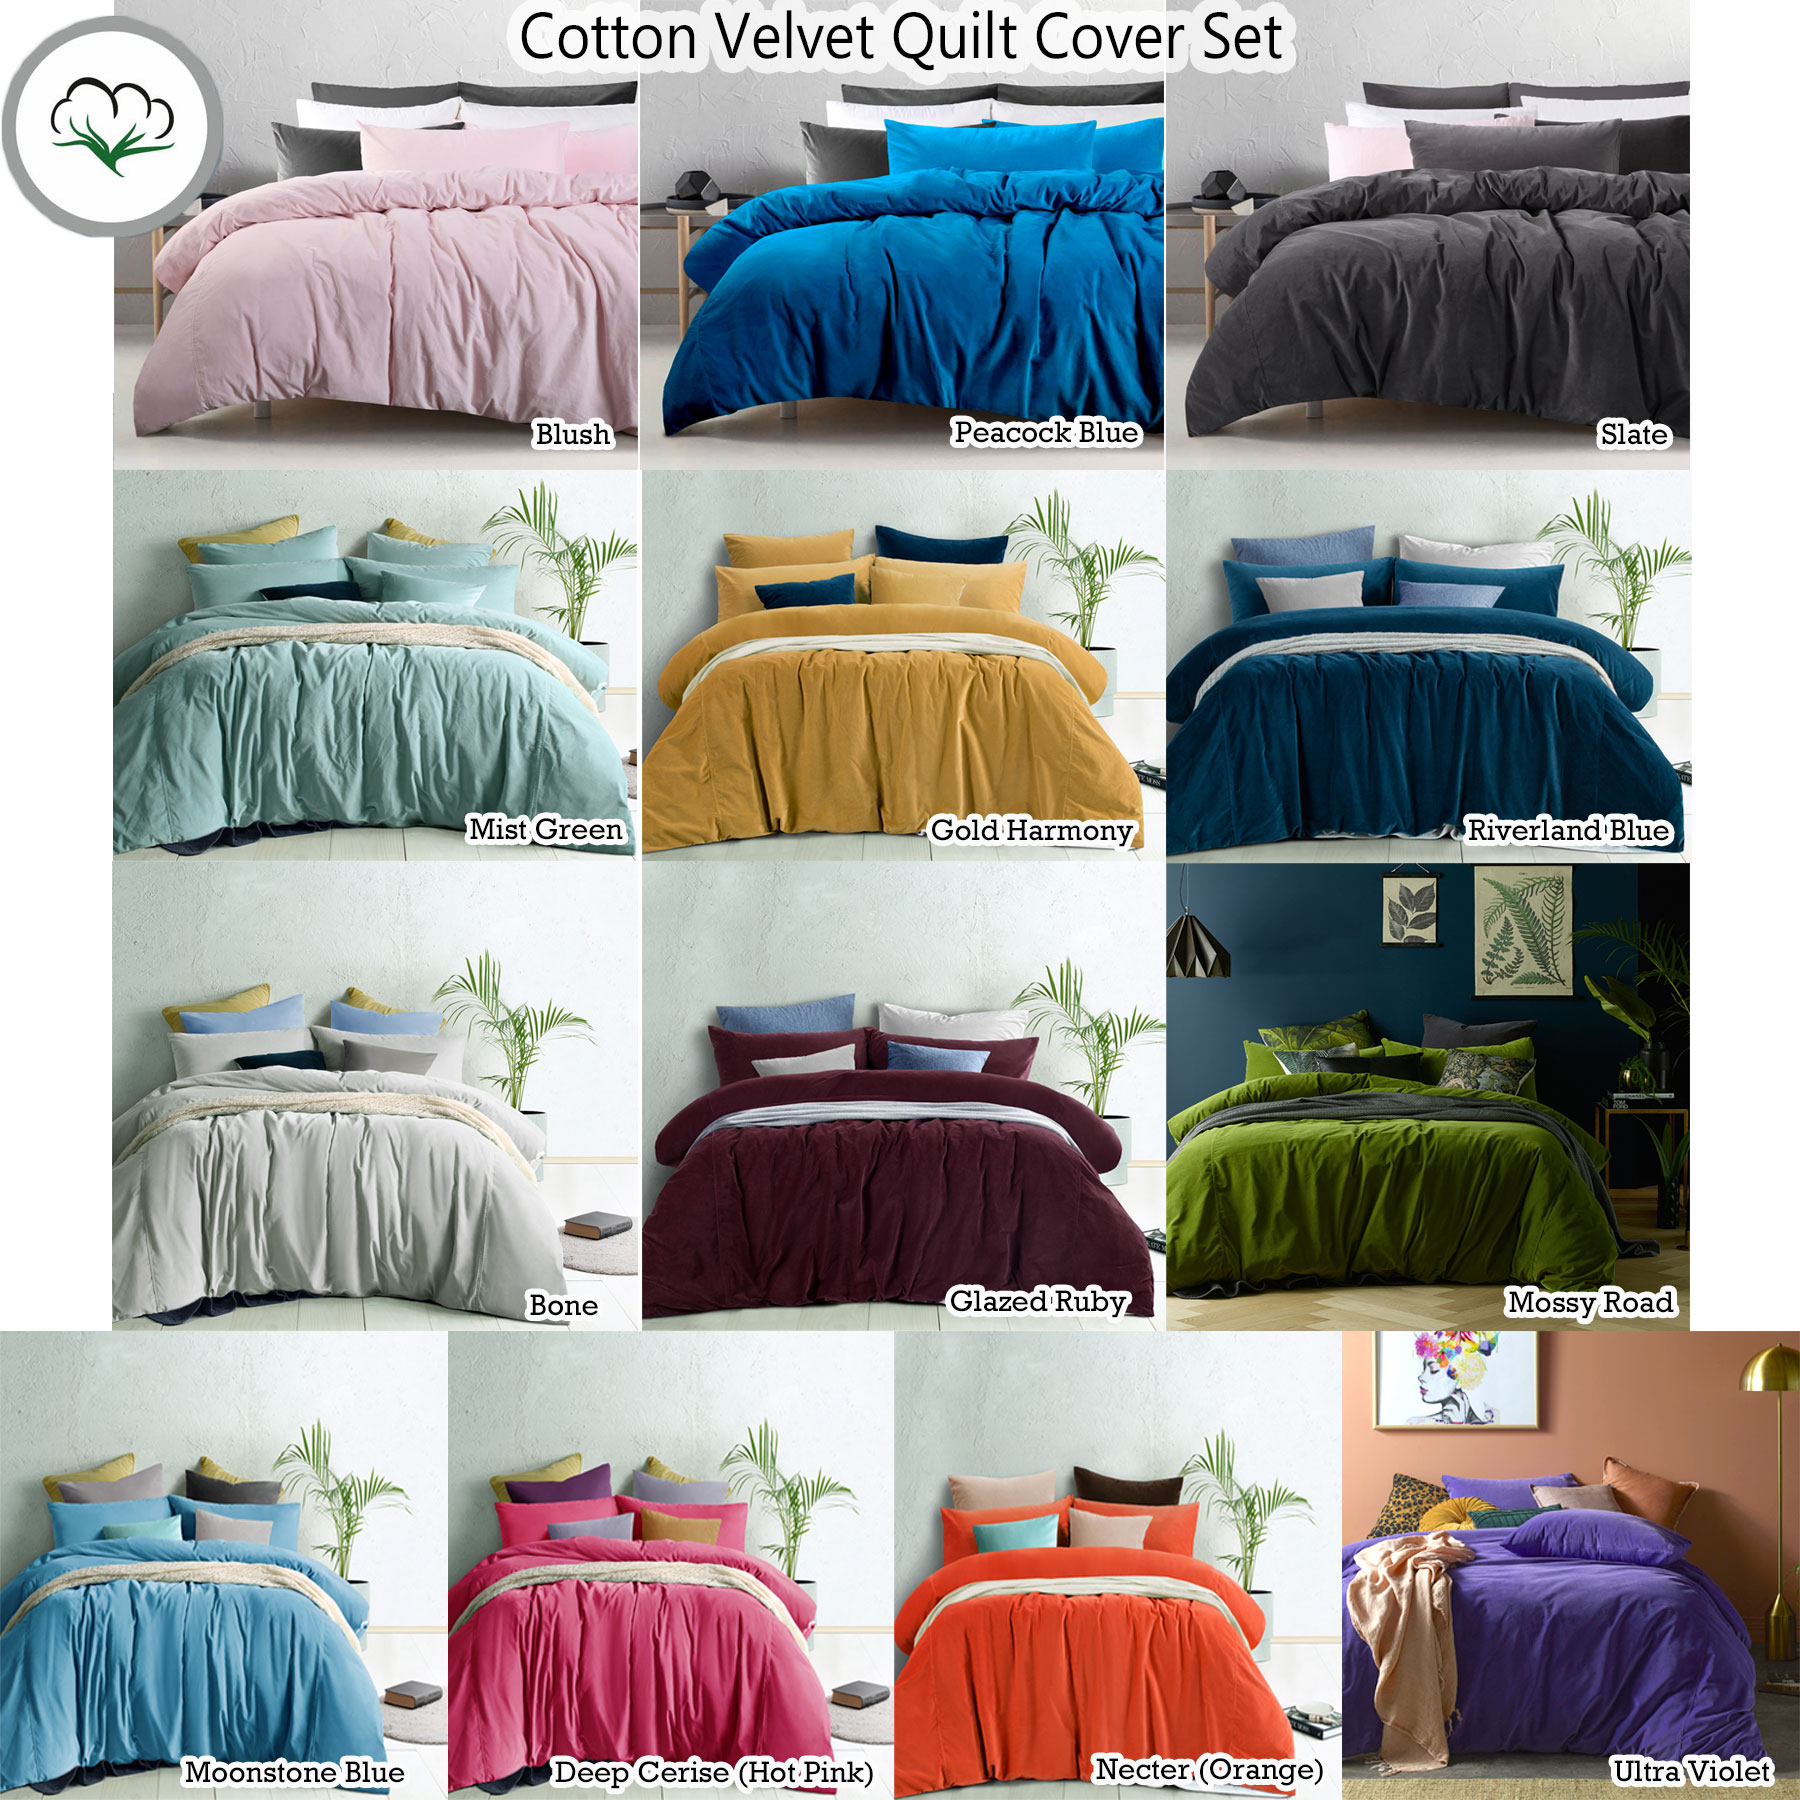 Cotton Velvet Quilt Doona Duvet Cover Set By Accessorize Queen King Super